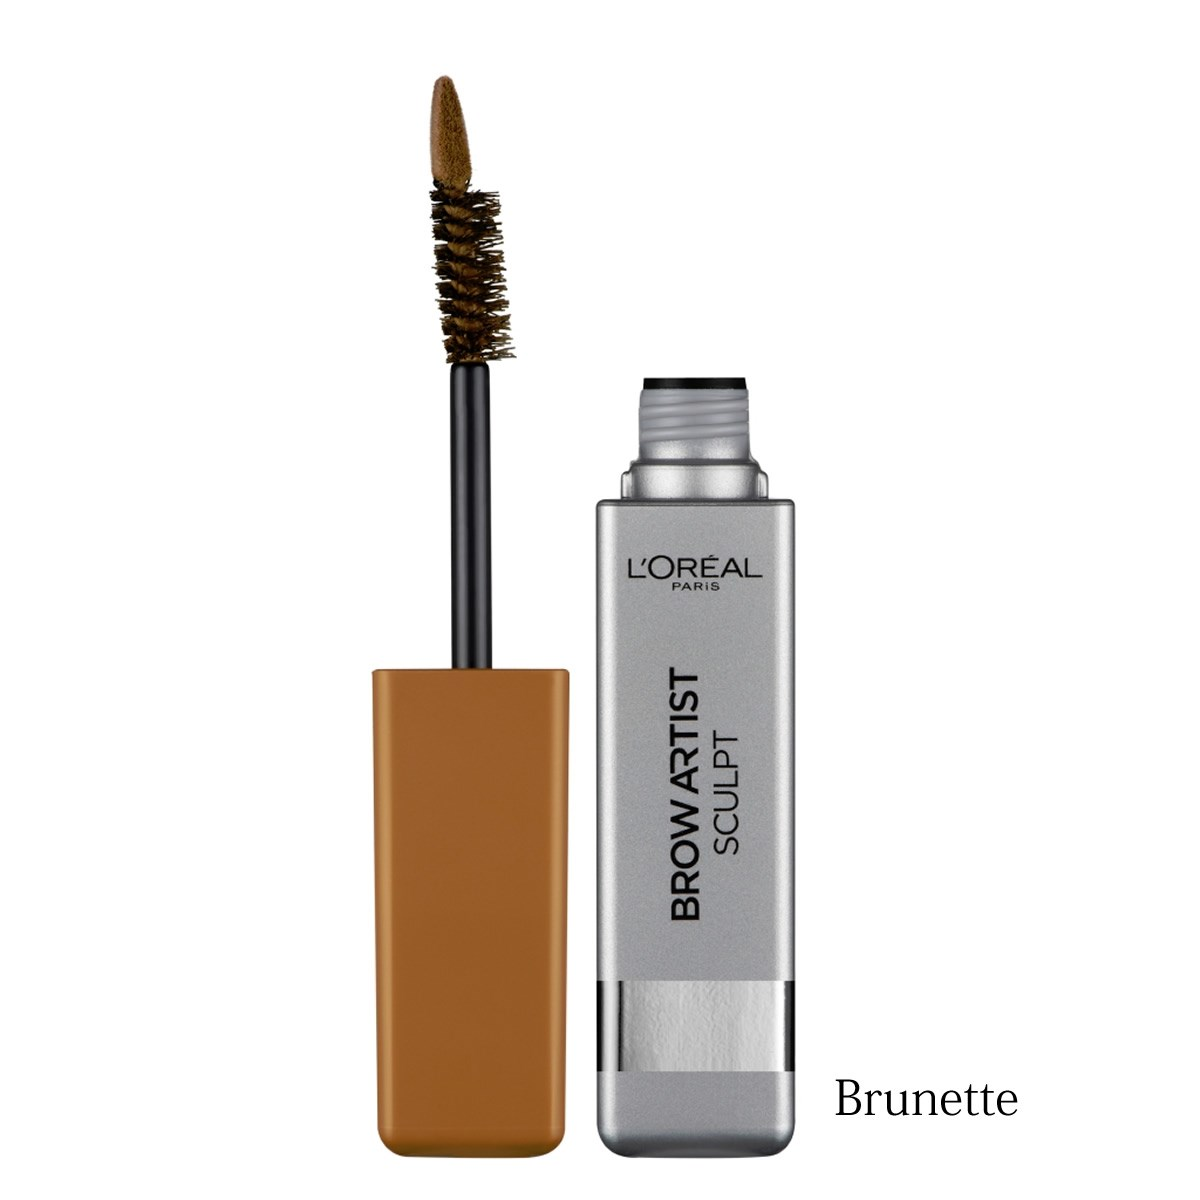 L'Oreal Paris Brow Artist Sculpt